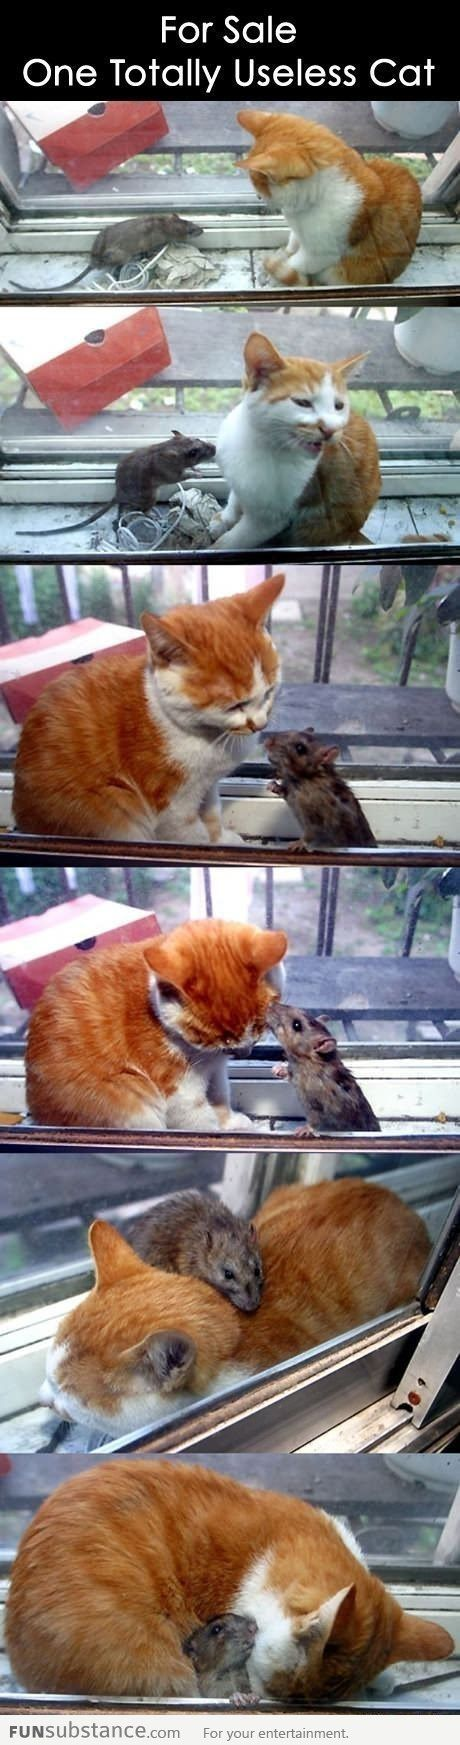 Cat and mouse relationship